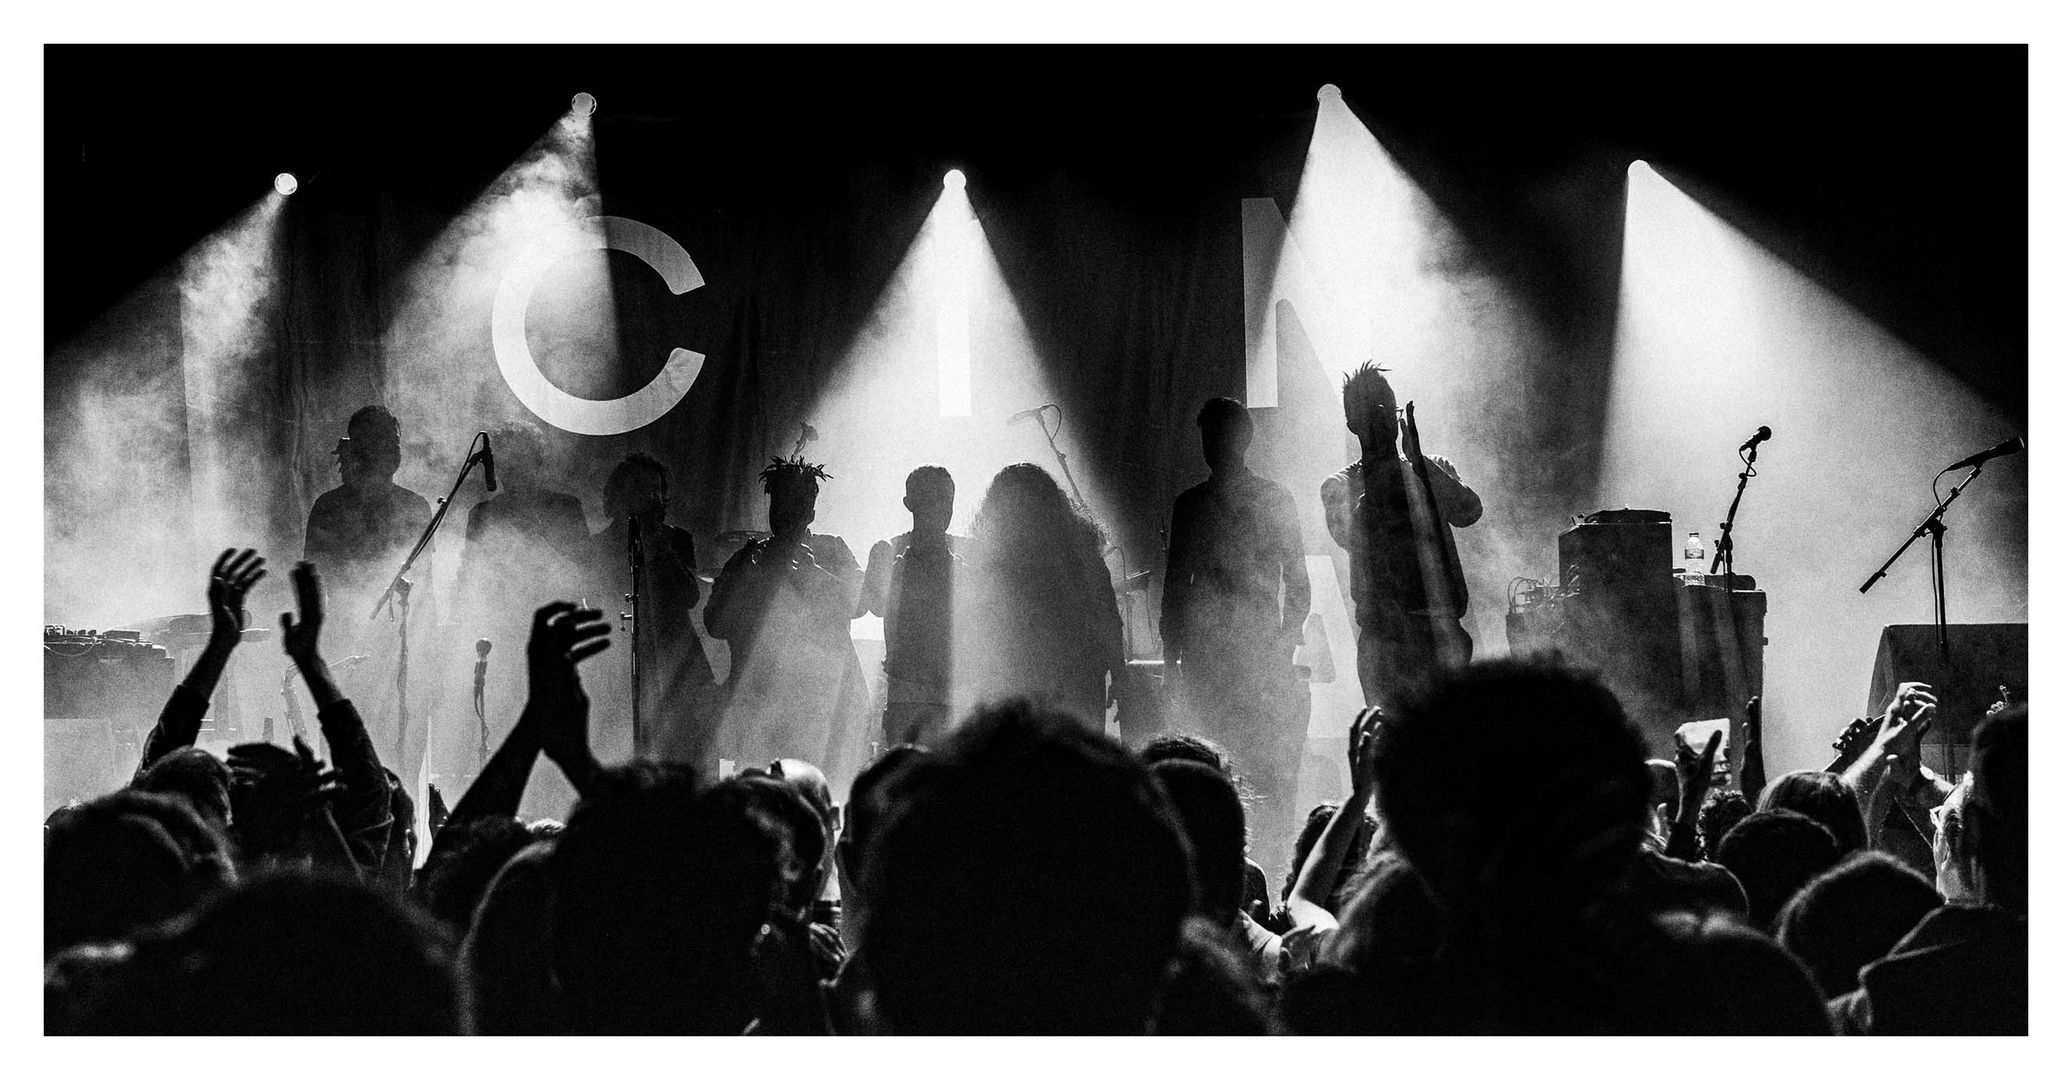 Cinematic Orchestra - The End of a Concert